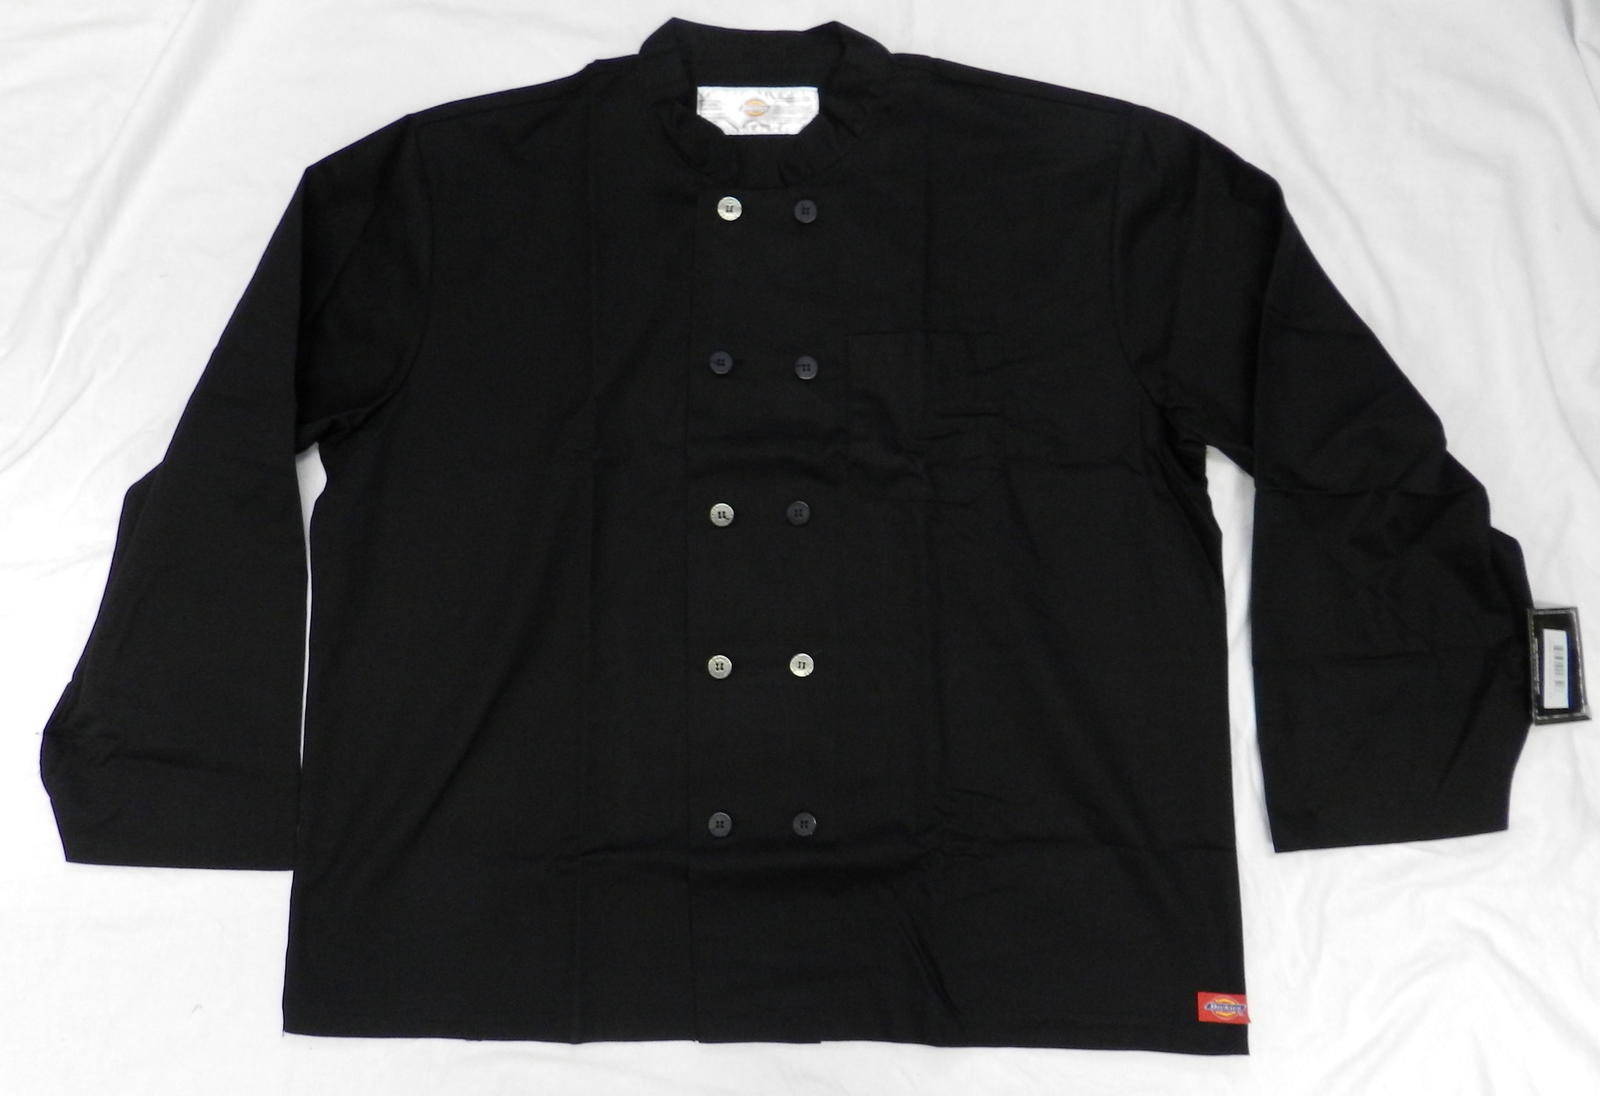 Dickies CW070305B Restaurant Button Front Black Uniform Chef Coat Jacket 3X New